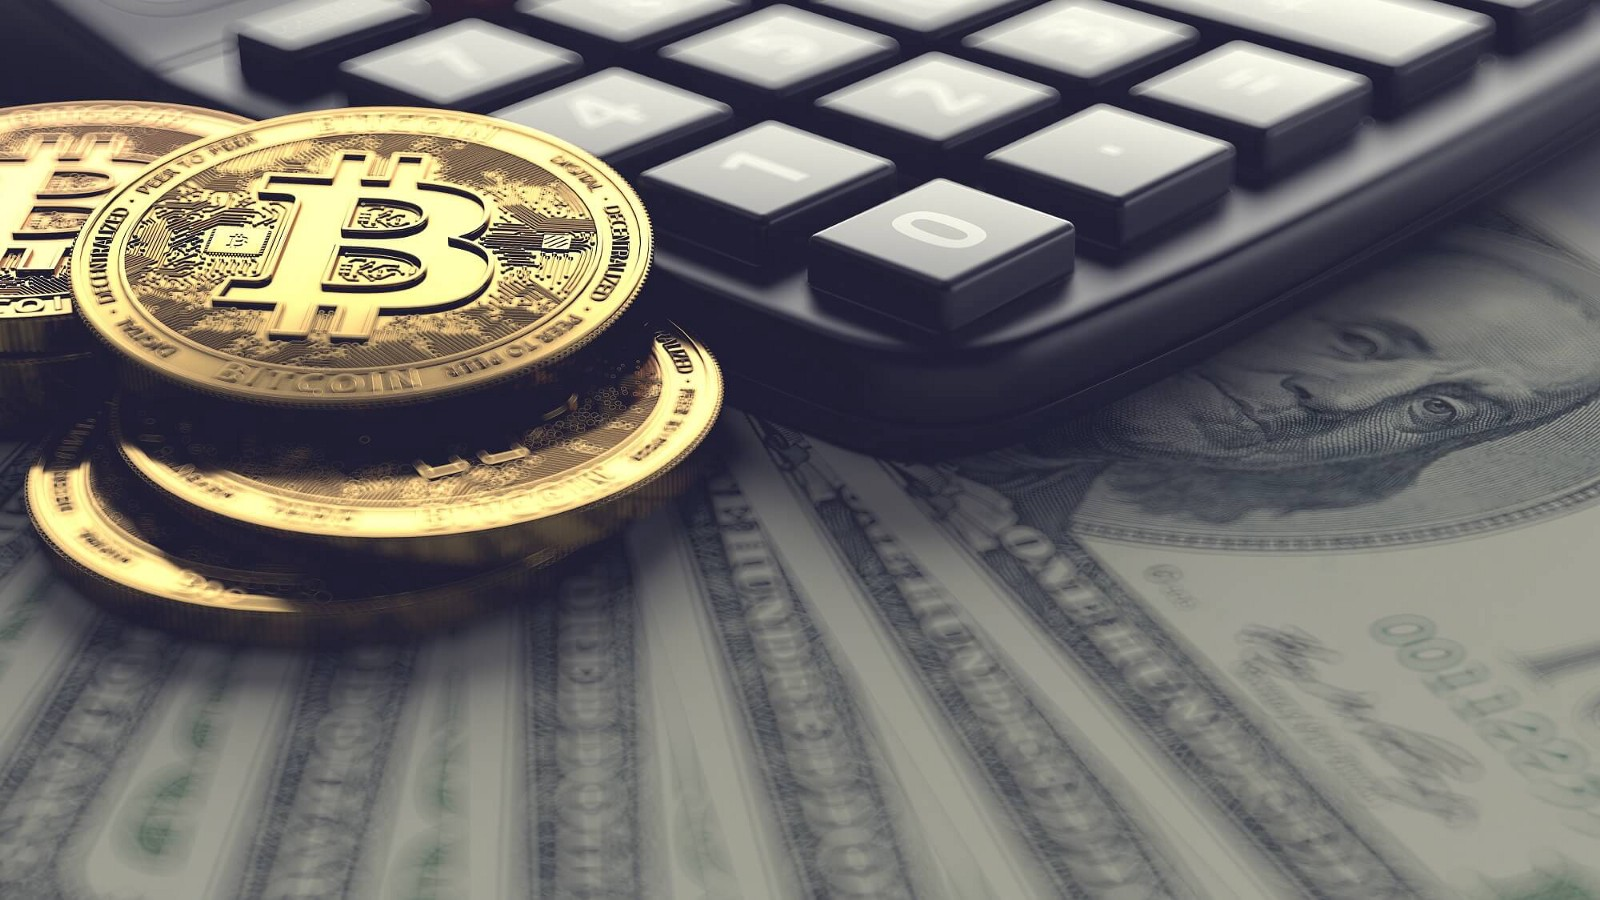 /3-tips-to-minimize-your-crypto-tax-liability-94889b4b988c feature image